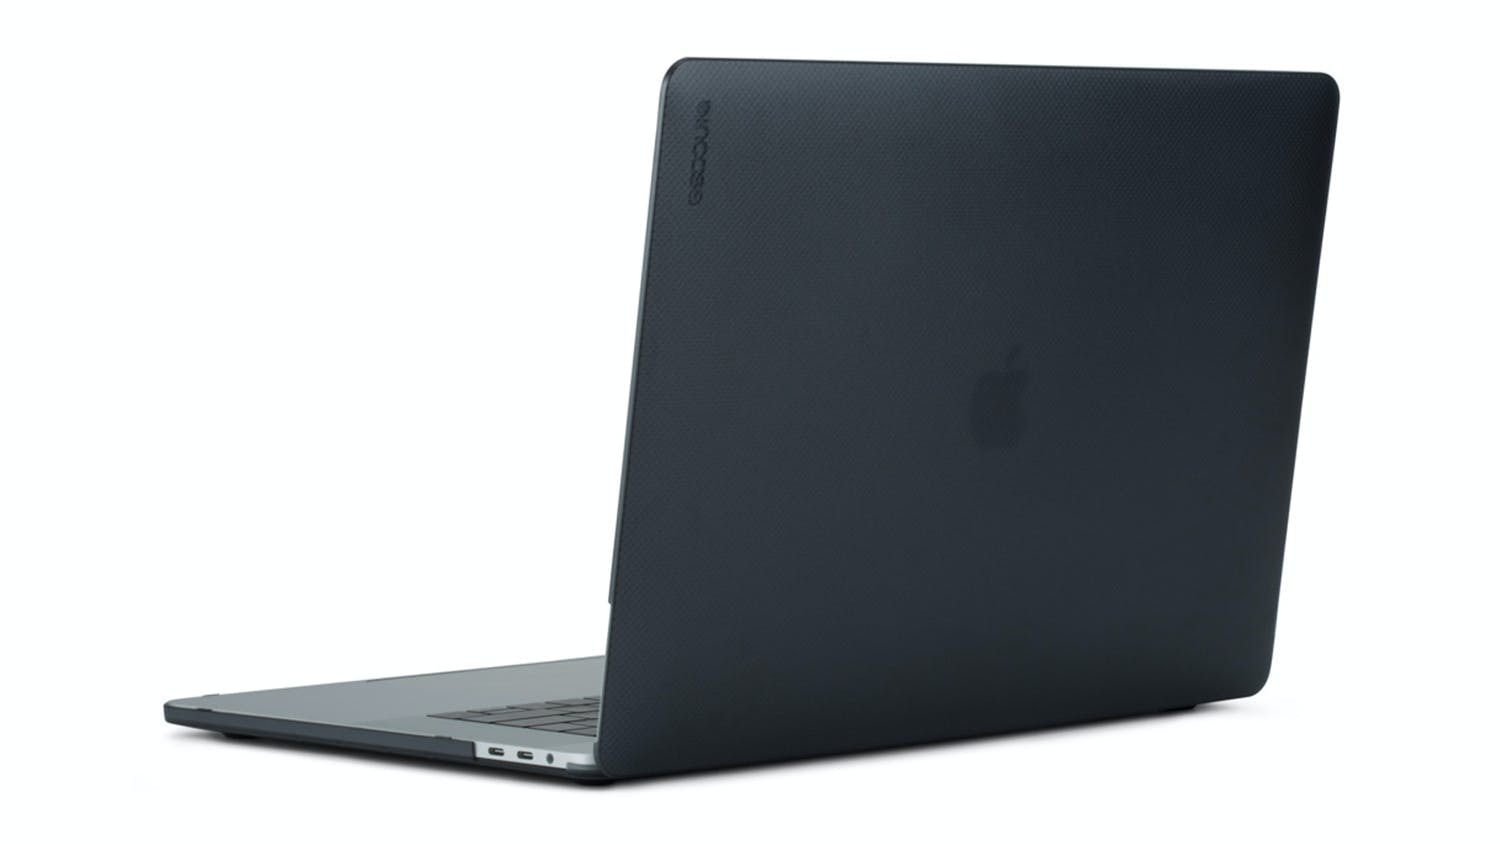 Incase Hardshell Case for 15-inch MacBook Pro - Black Frost